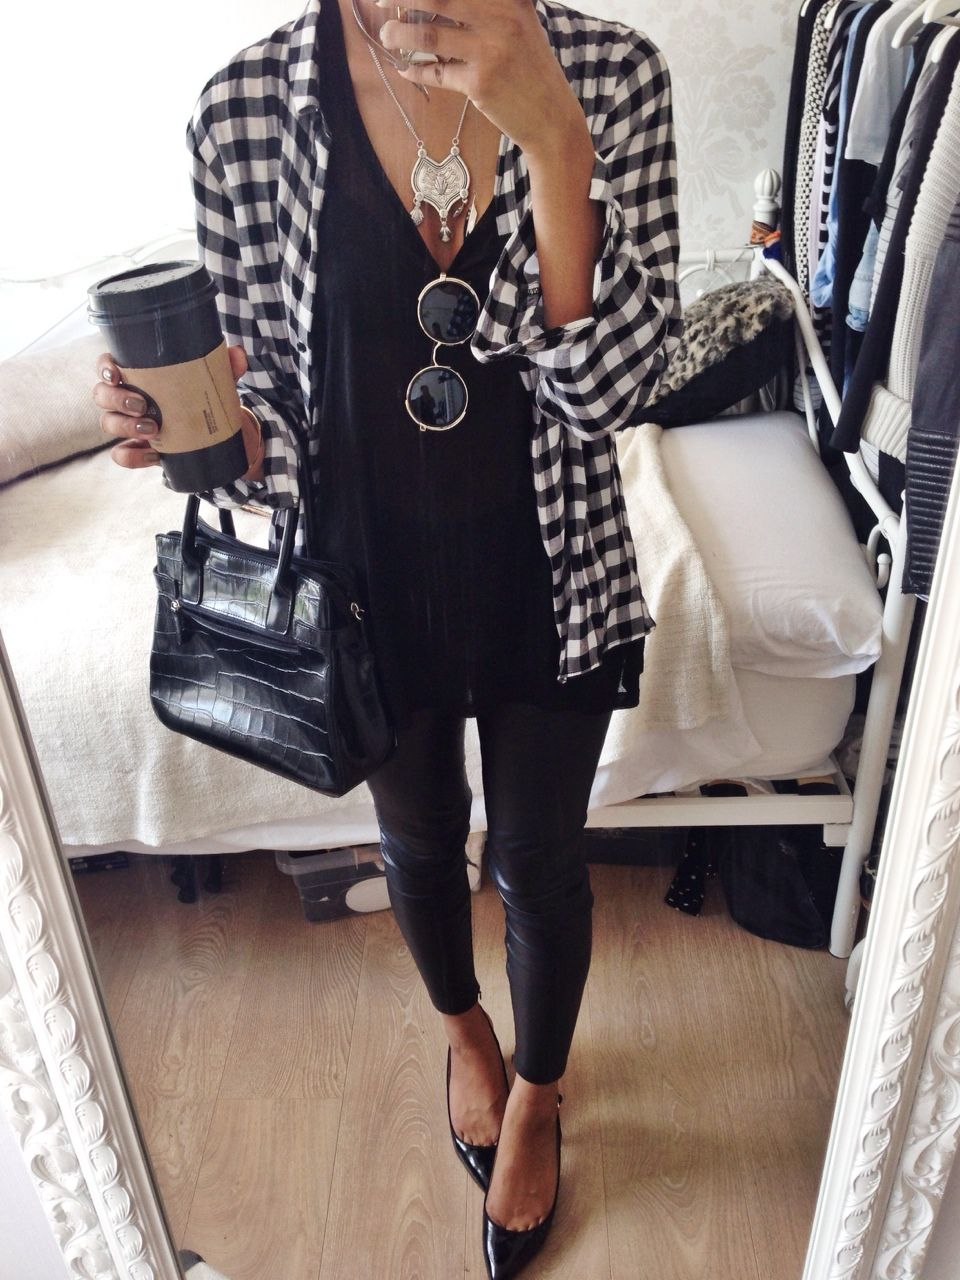 Flannel dress for women  Pin by Cinthya Martinez on outfit  Pinterest  Legs Flannels and